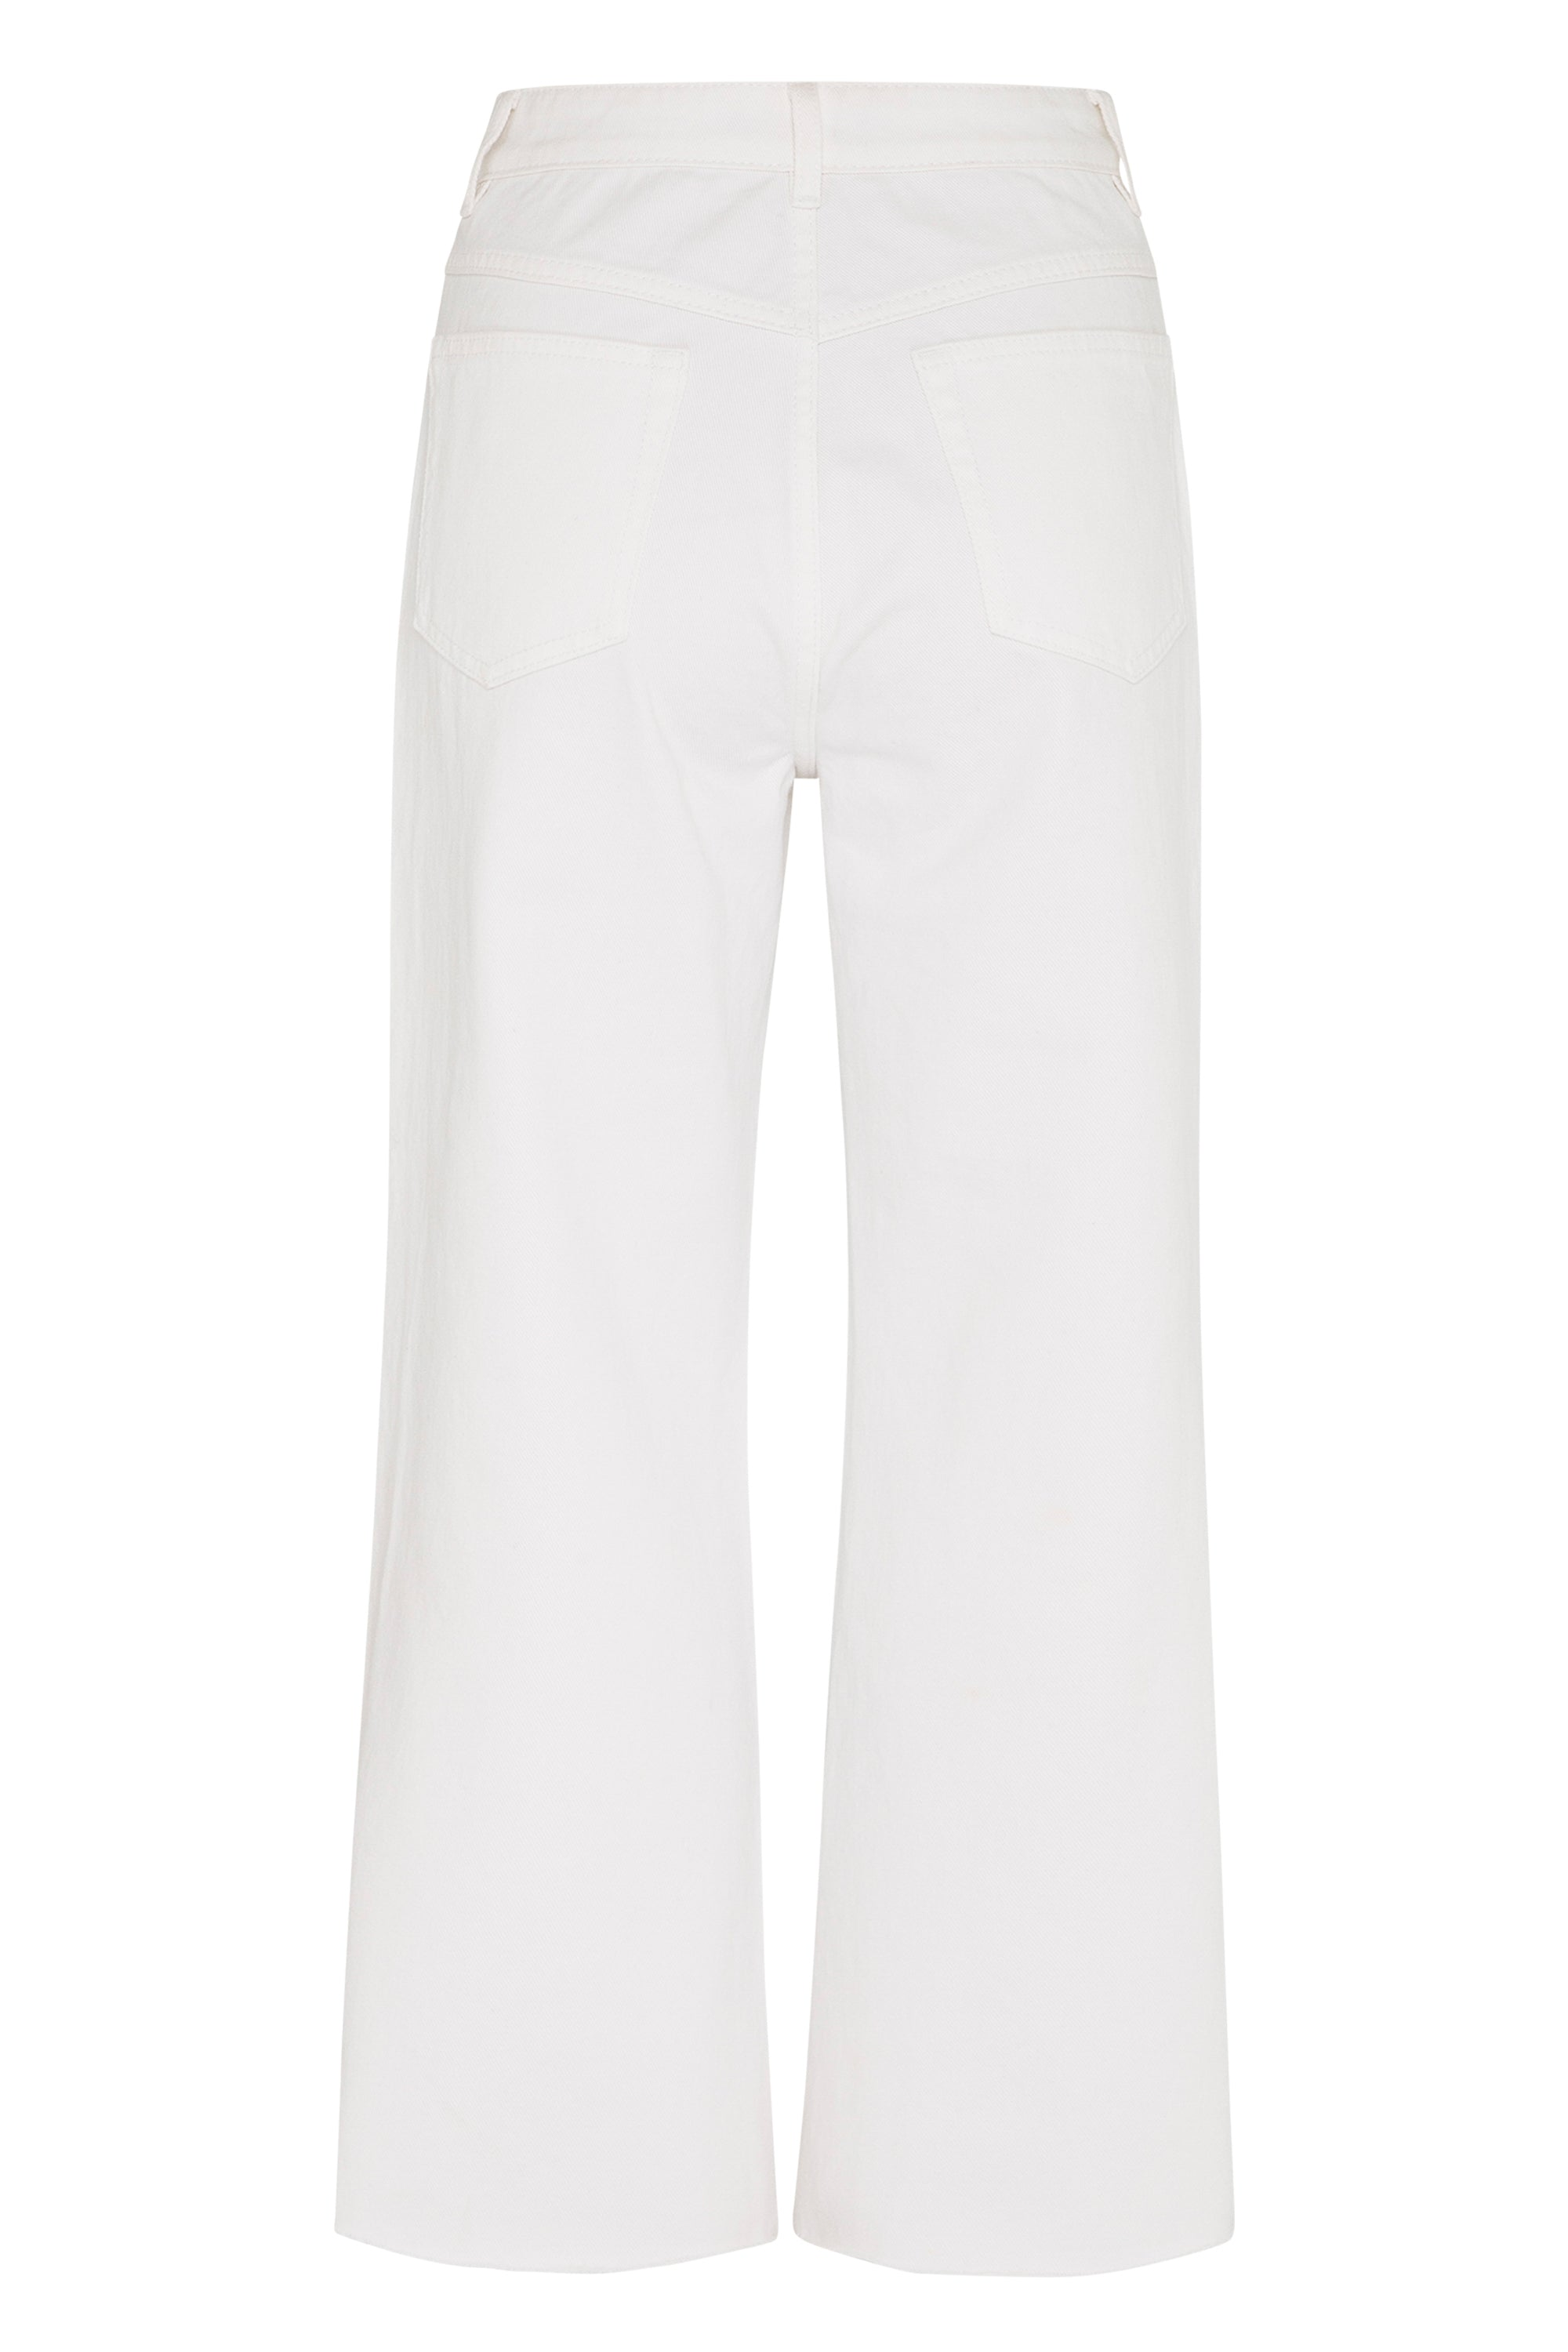 Sailor Jeans In White